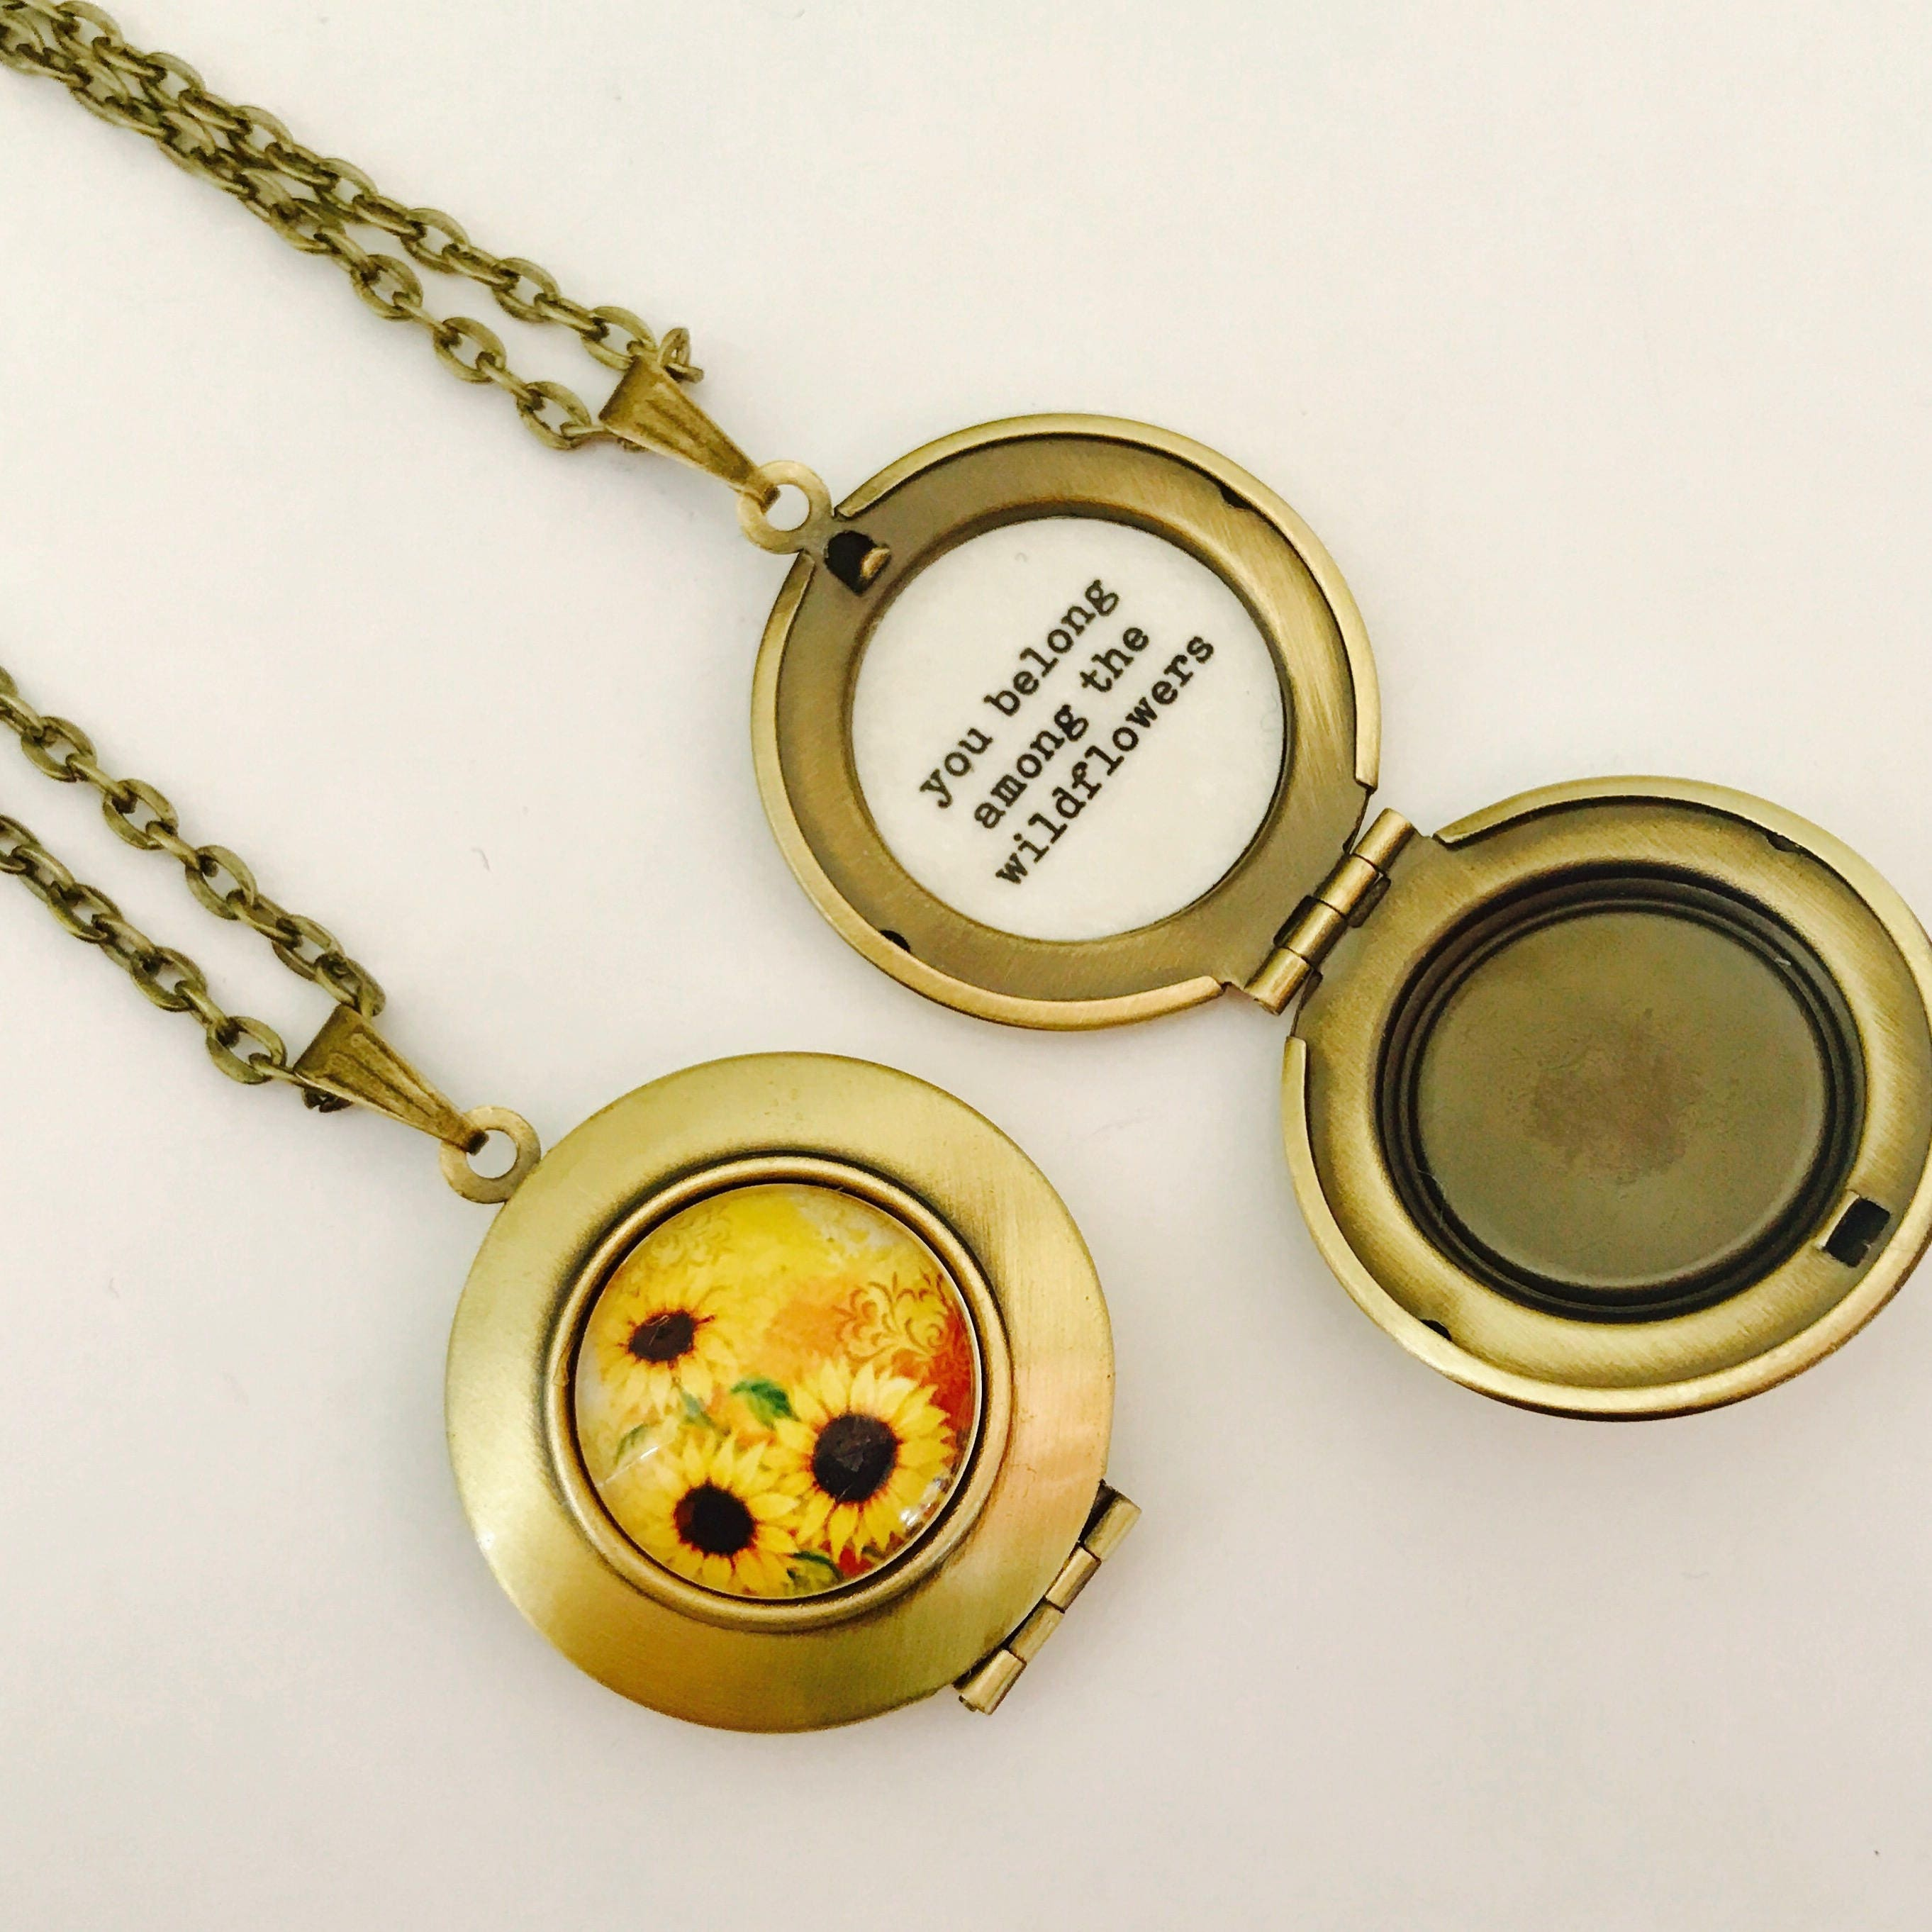 necklace diffuser of being christmas locket lockets on essential kid refocus diy days oil necklaces